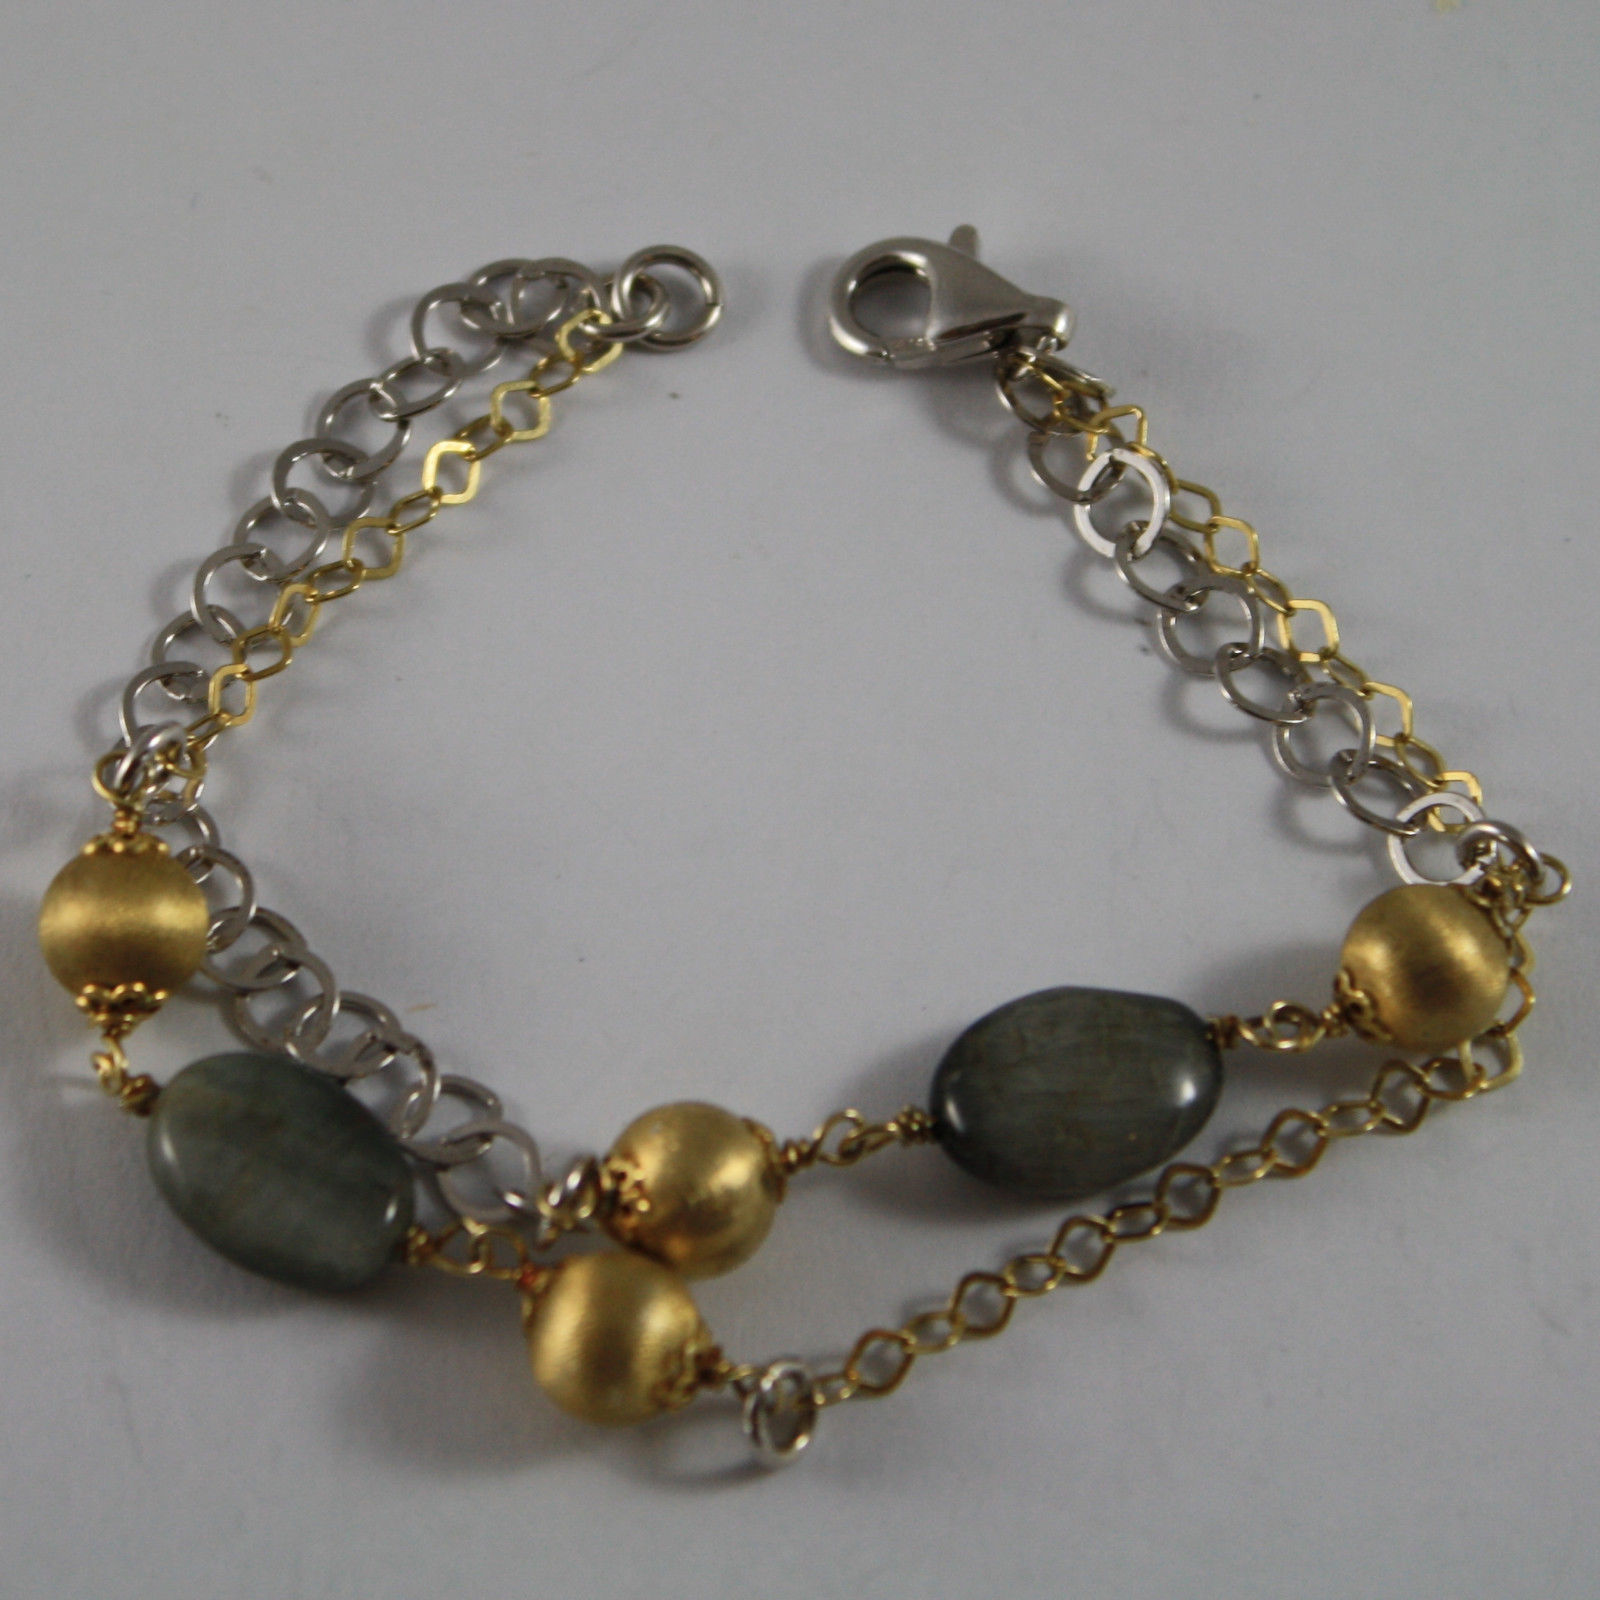 .925 RHODIUM SILVER AND YELLOW GOLD PLATED BRACELET WITH SPHERES AND GRAY QUARTZ